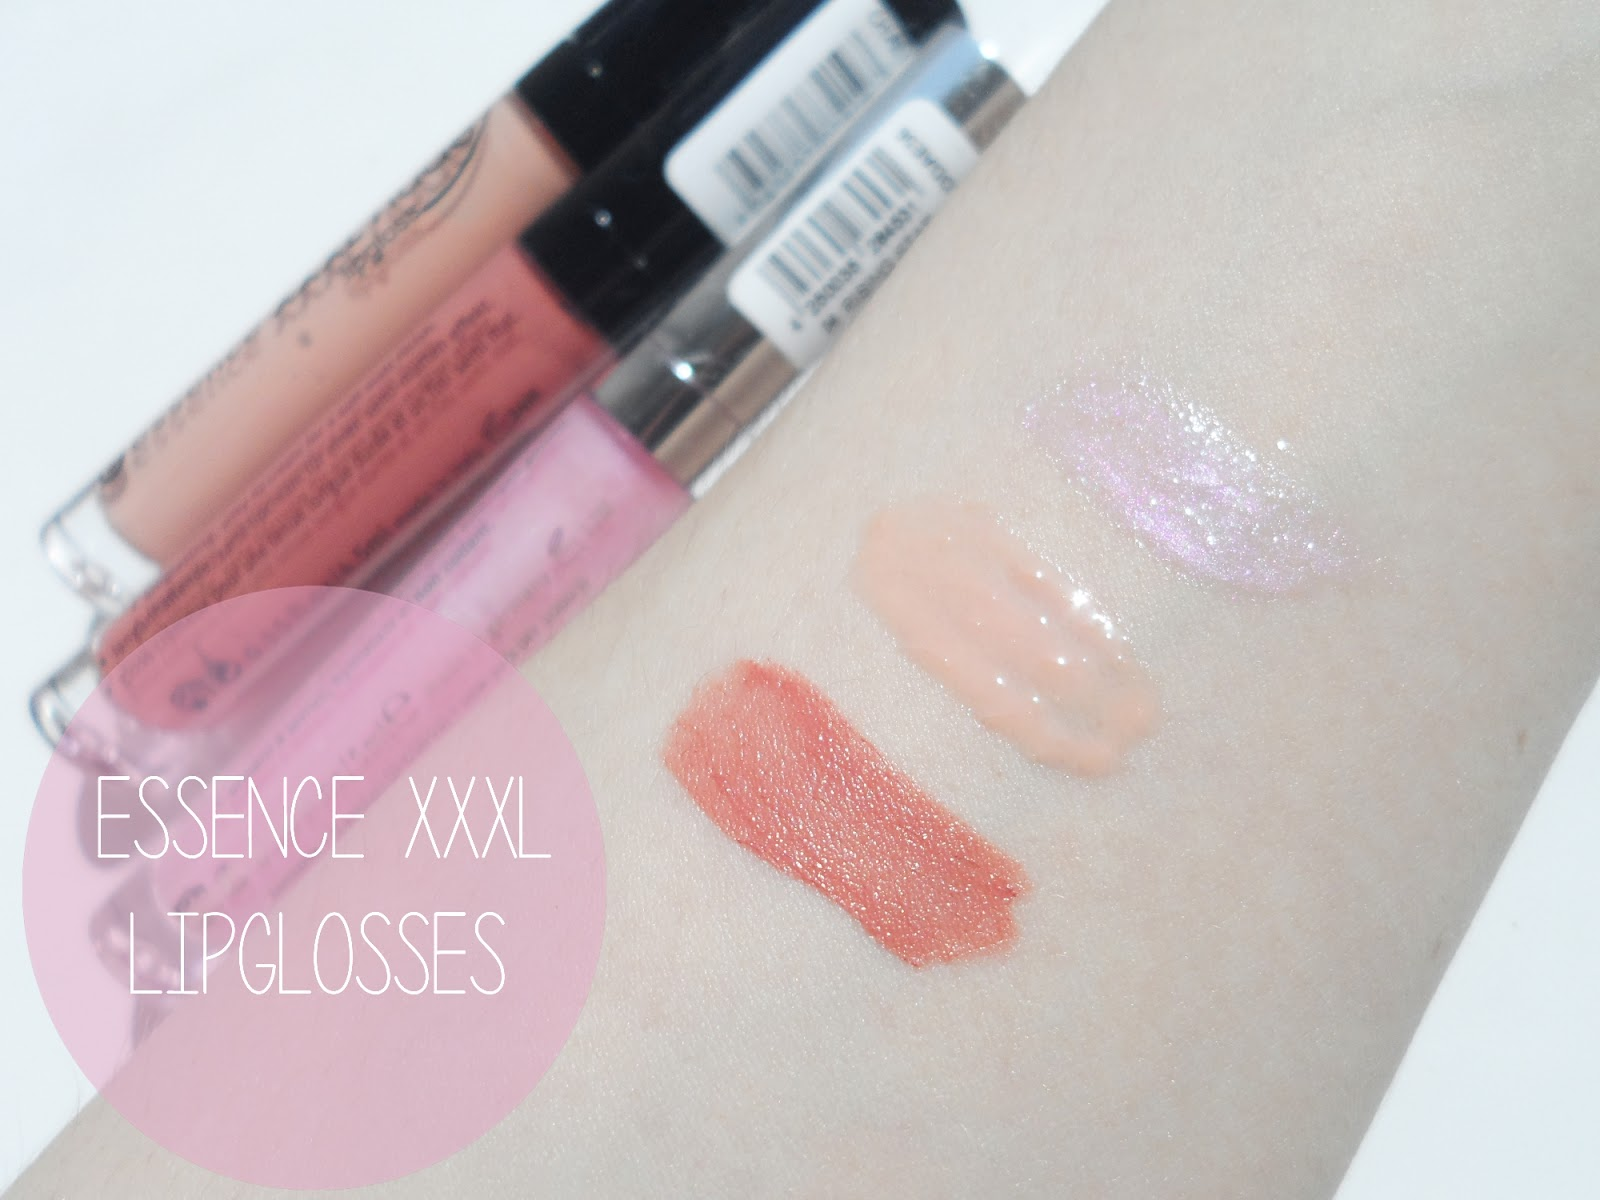 liz breygel Essence Lip Gloss Review Swatches blogger xxxl shine nude loglasting rising star soft nude just nude buy online